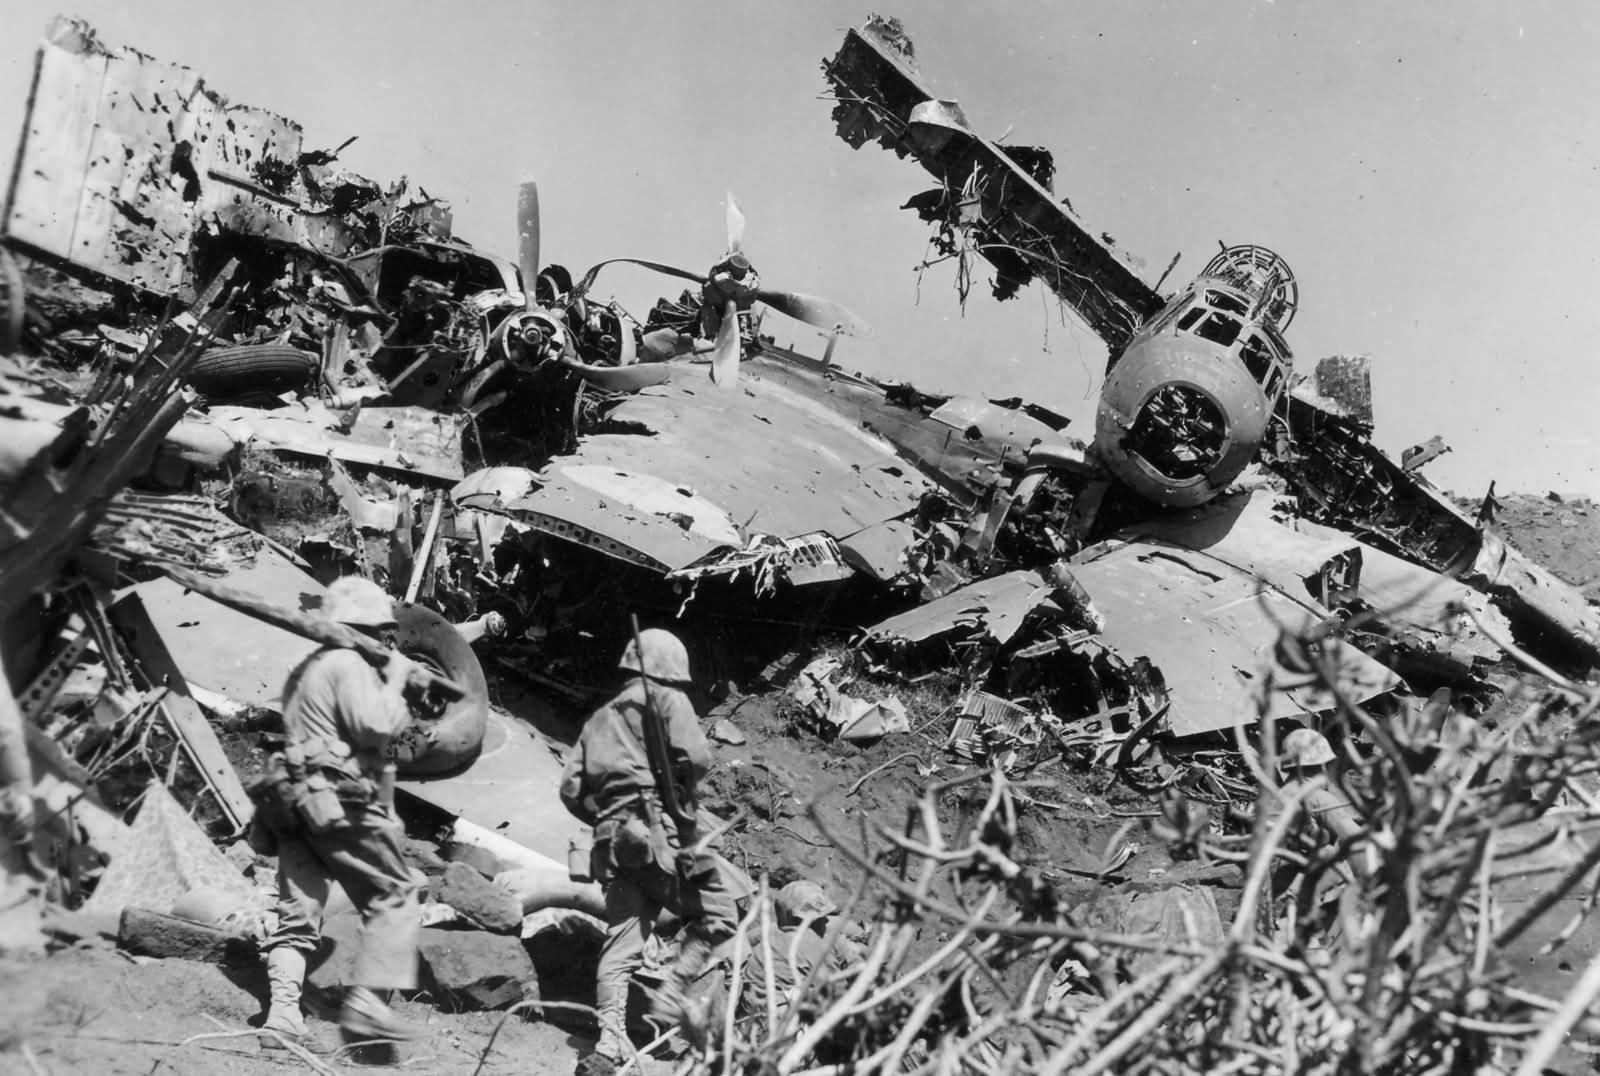 Japanese Aircraft Wrecks on Iwo Jima 4